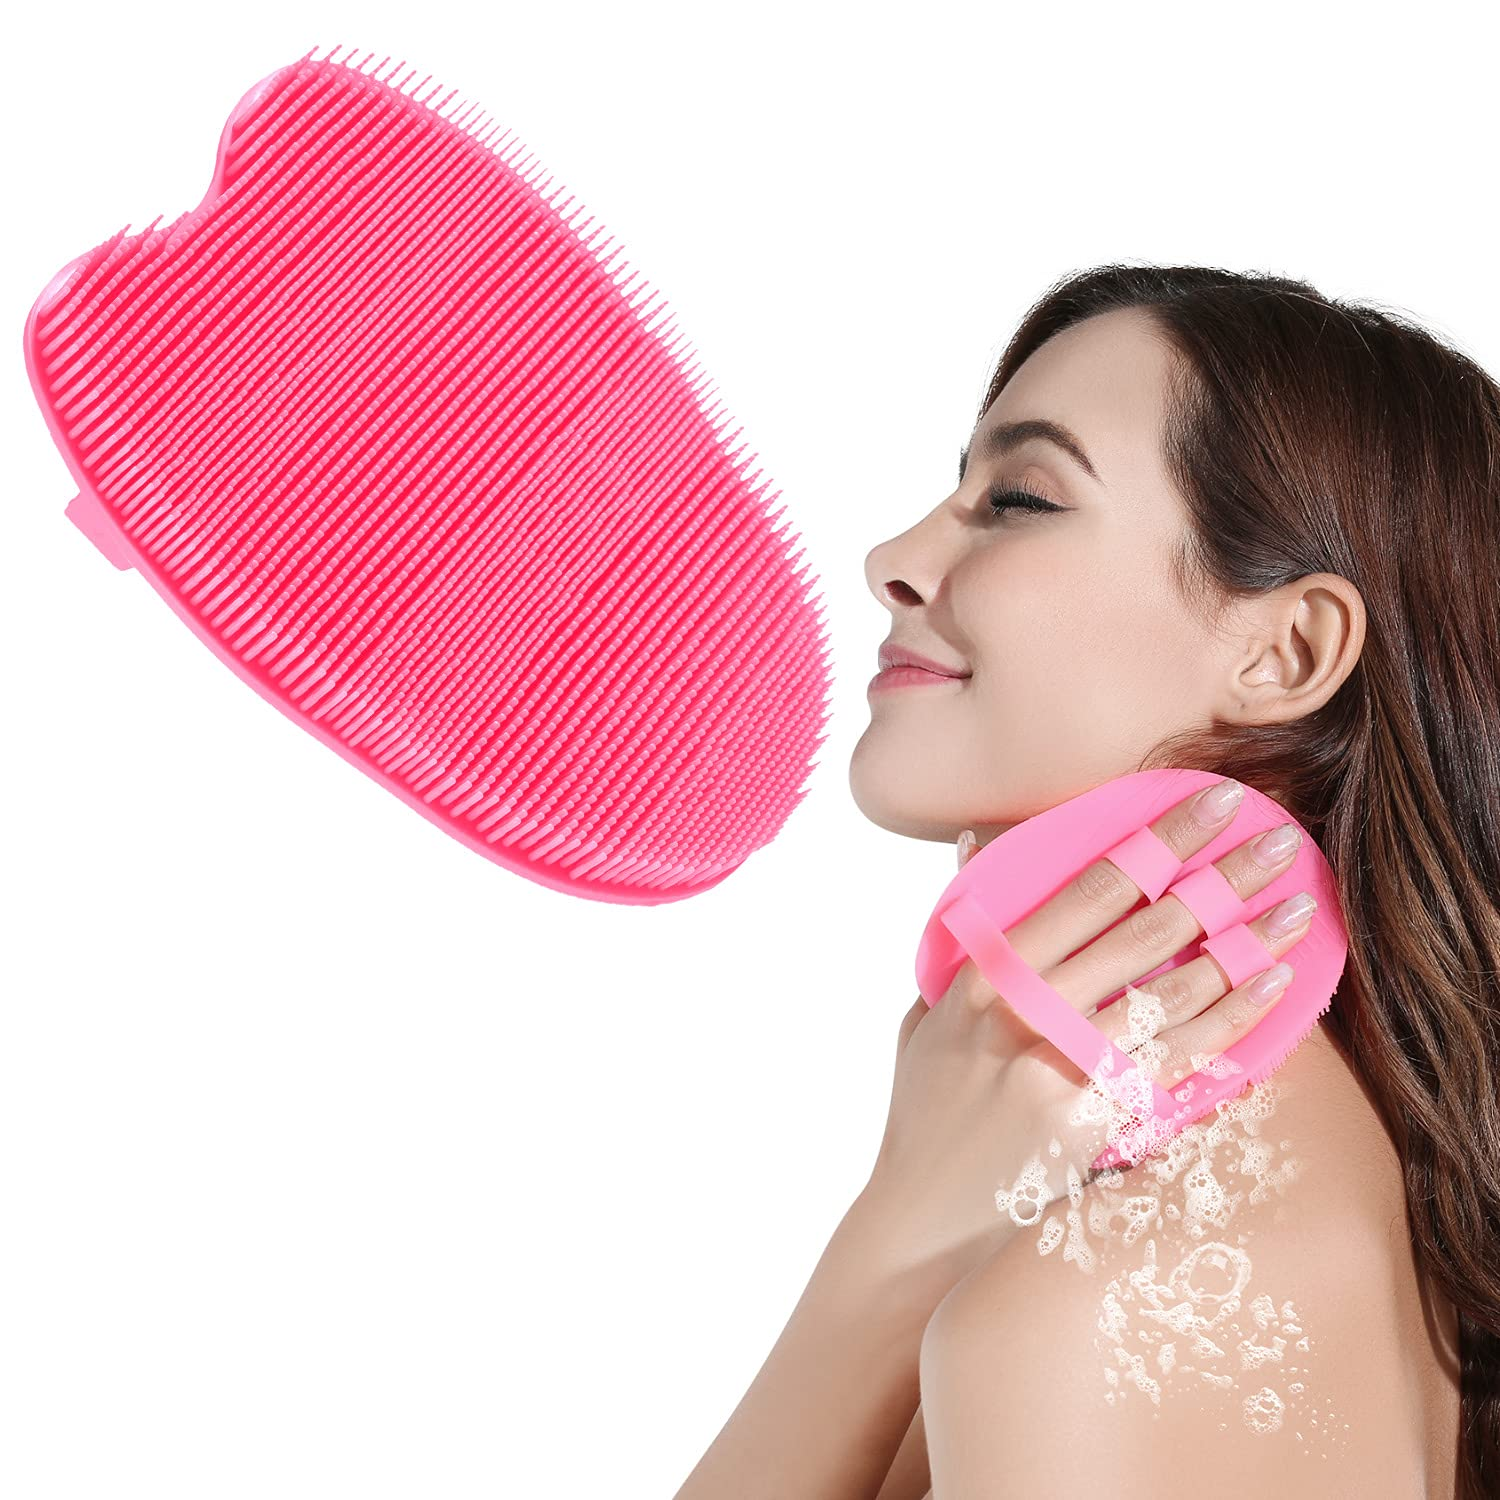 HieerBus Silicone Body Scrubber Brush Loofah Fashionable Wa Bath Exfoliating Challenge the lowest price of Japan